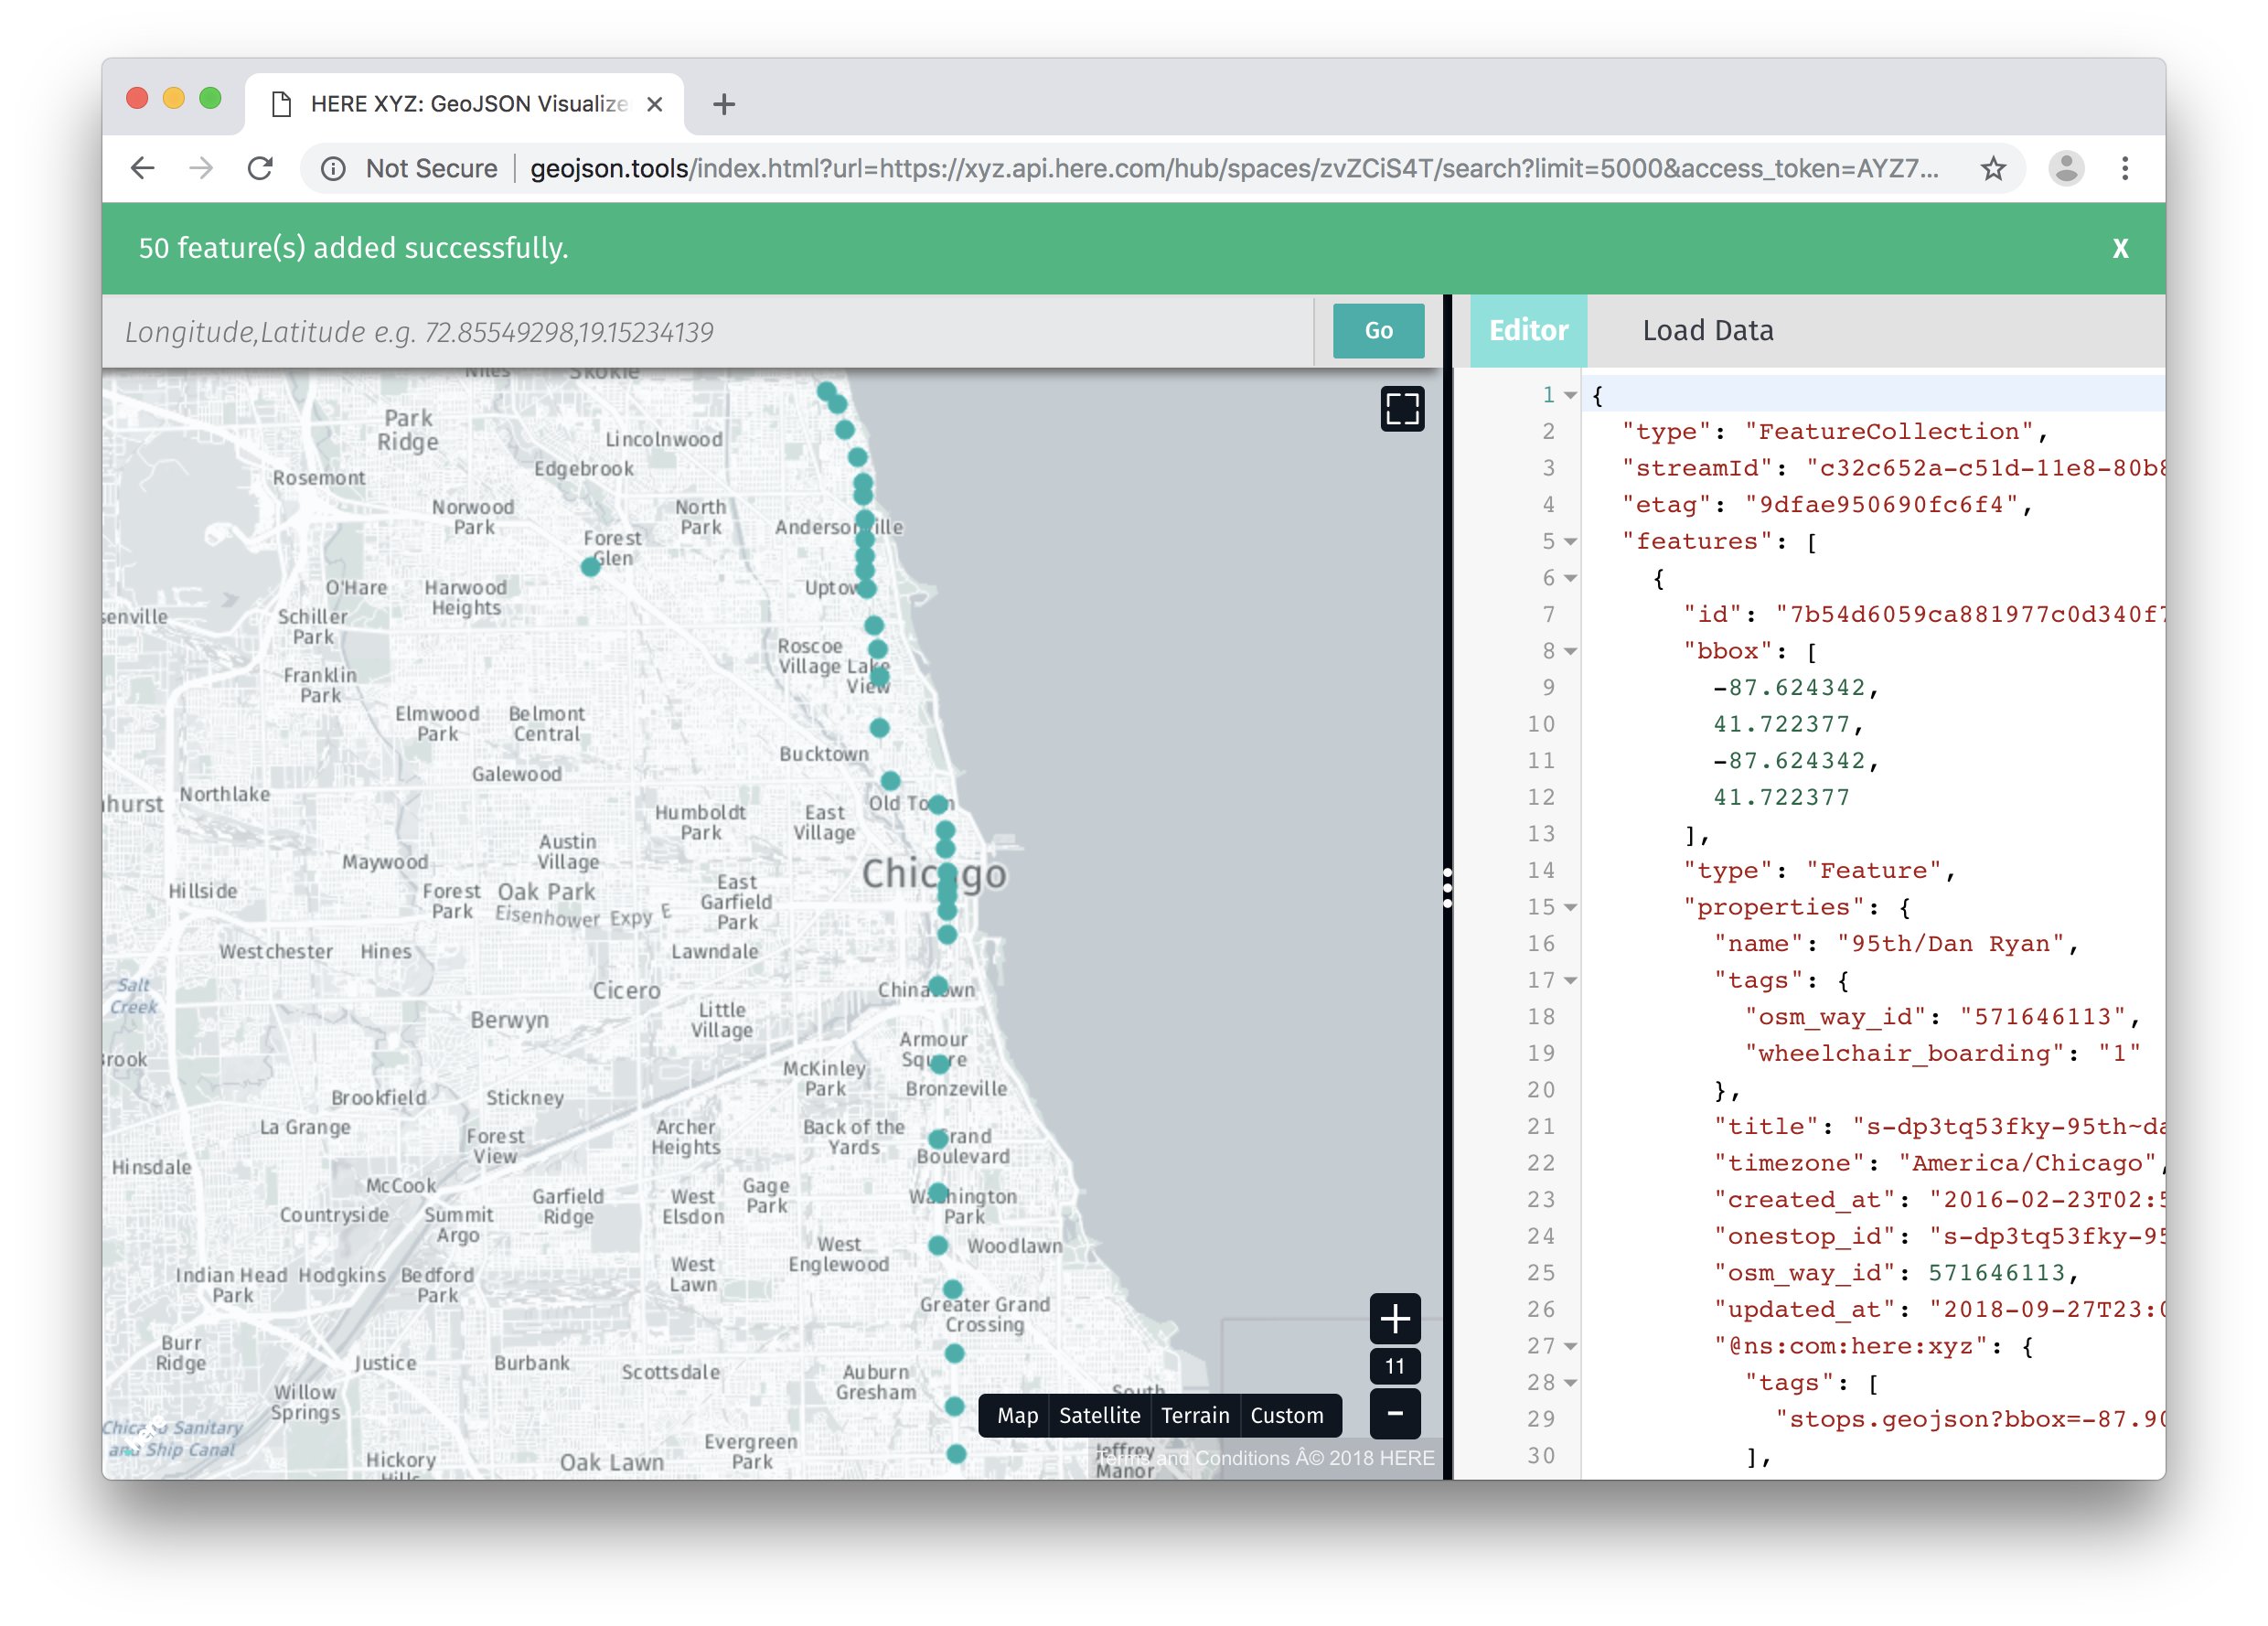 Build an Interactive Web Map of Subway Stations and Routes Showing